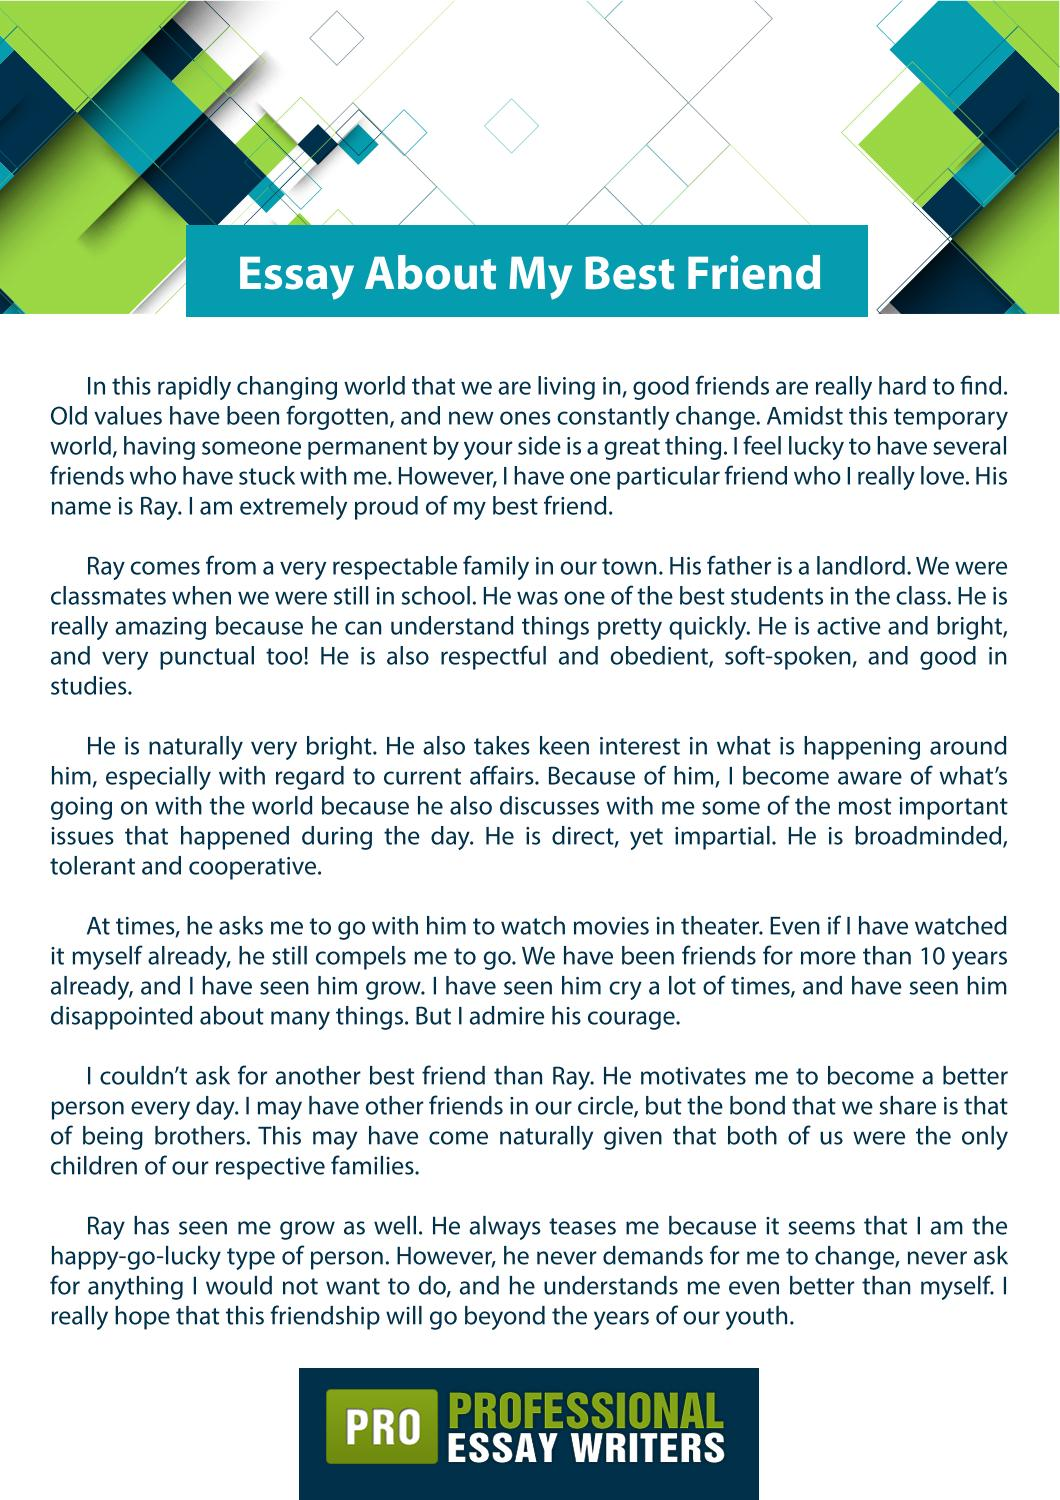 essay about my best friend by professional essay writers issuu